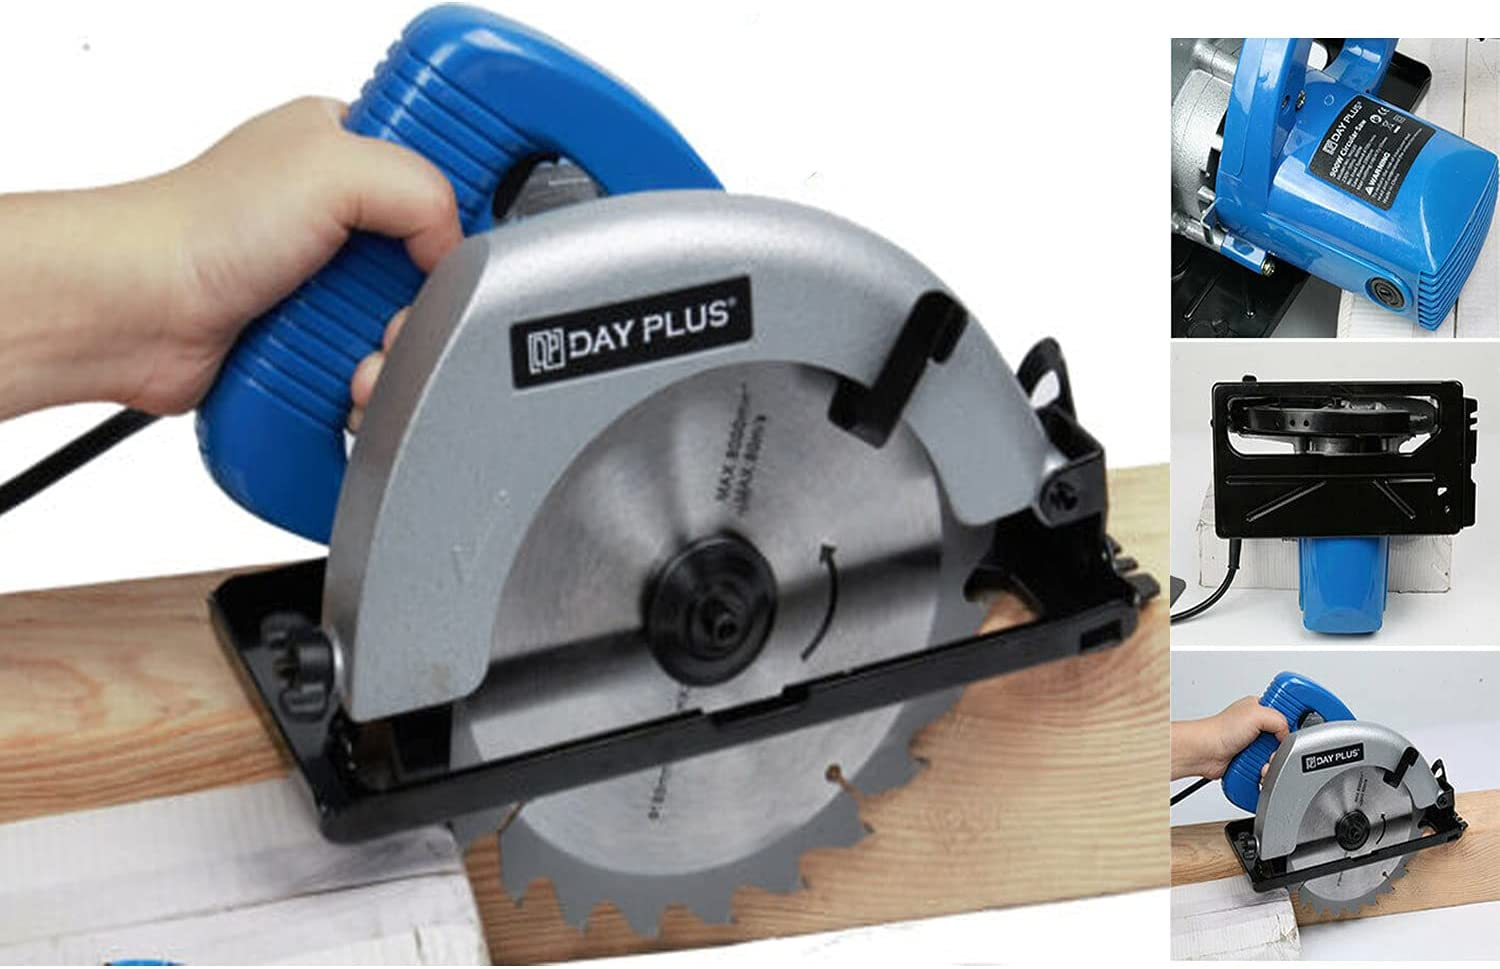 900W Circular Saw Electric Saws OFFicial store Cheap SALE Start Cutti Tools-Handheld Power